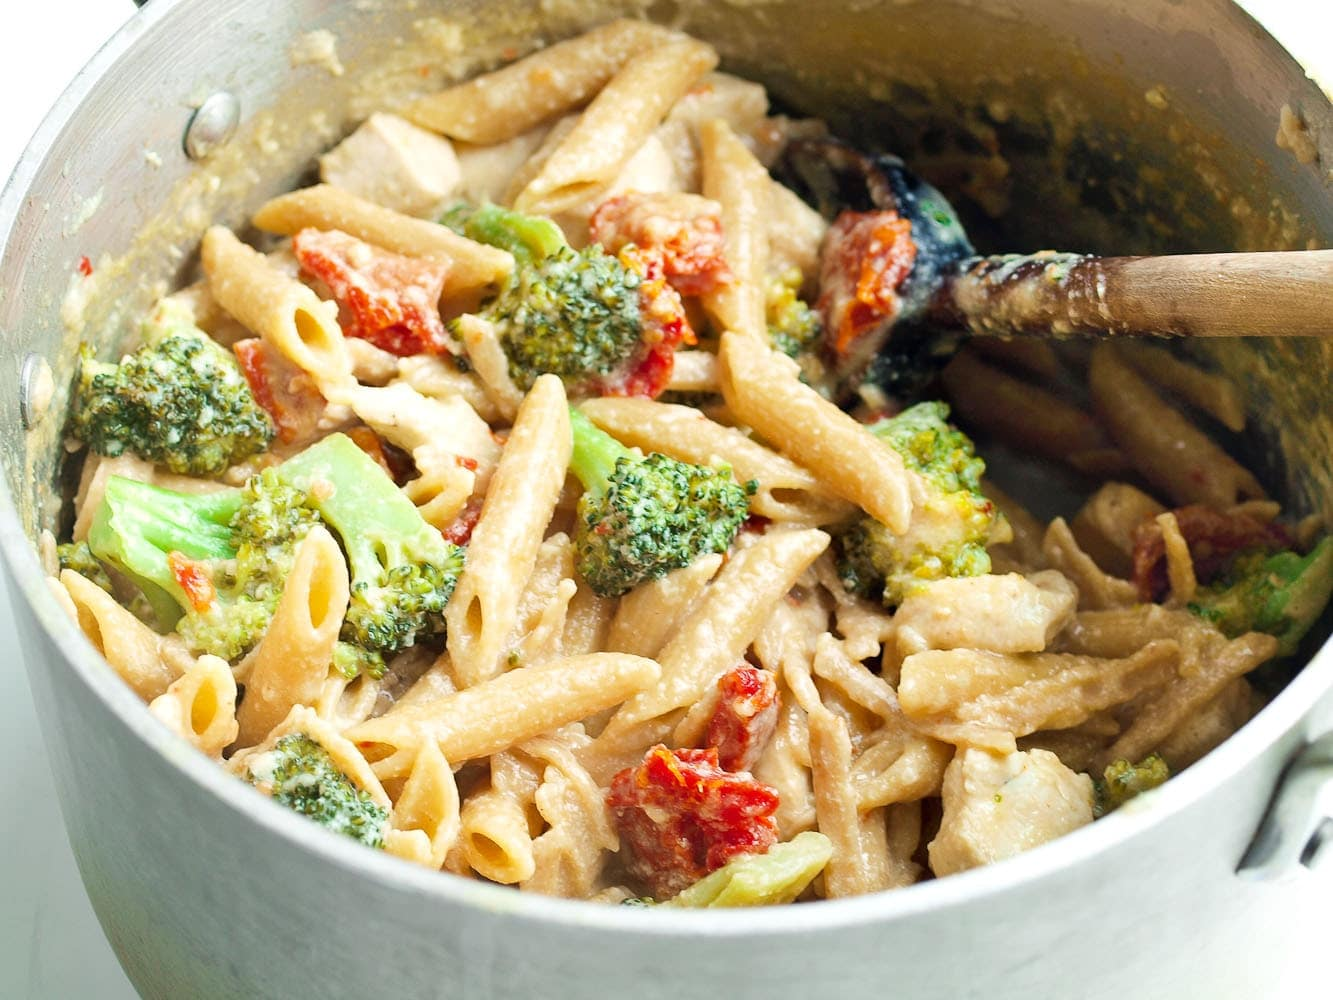 Tangy One Pot Chicken And Veggie Pasta Dinner